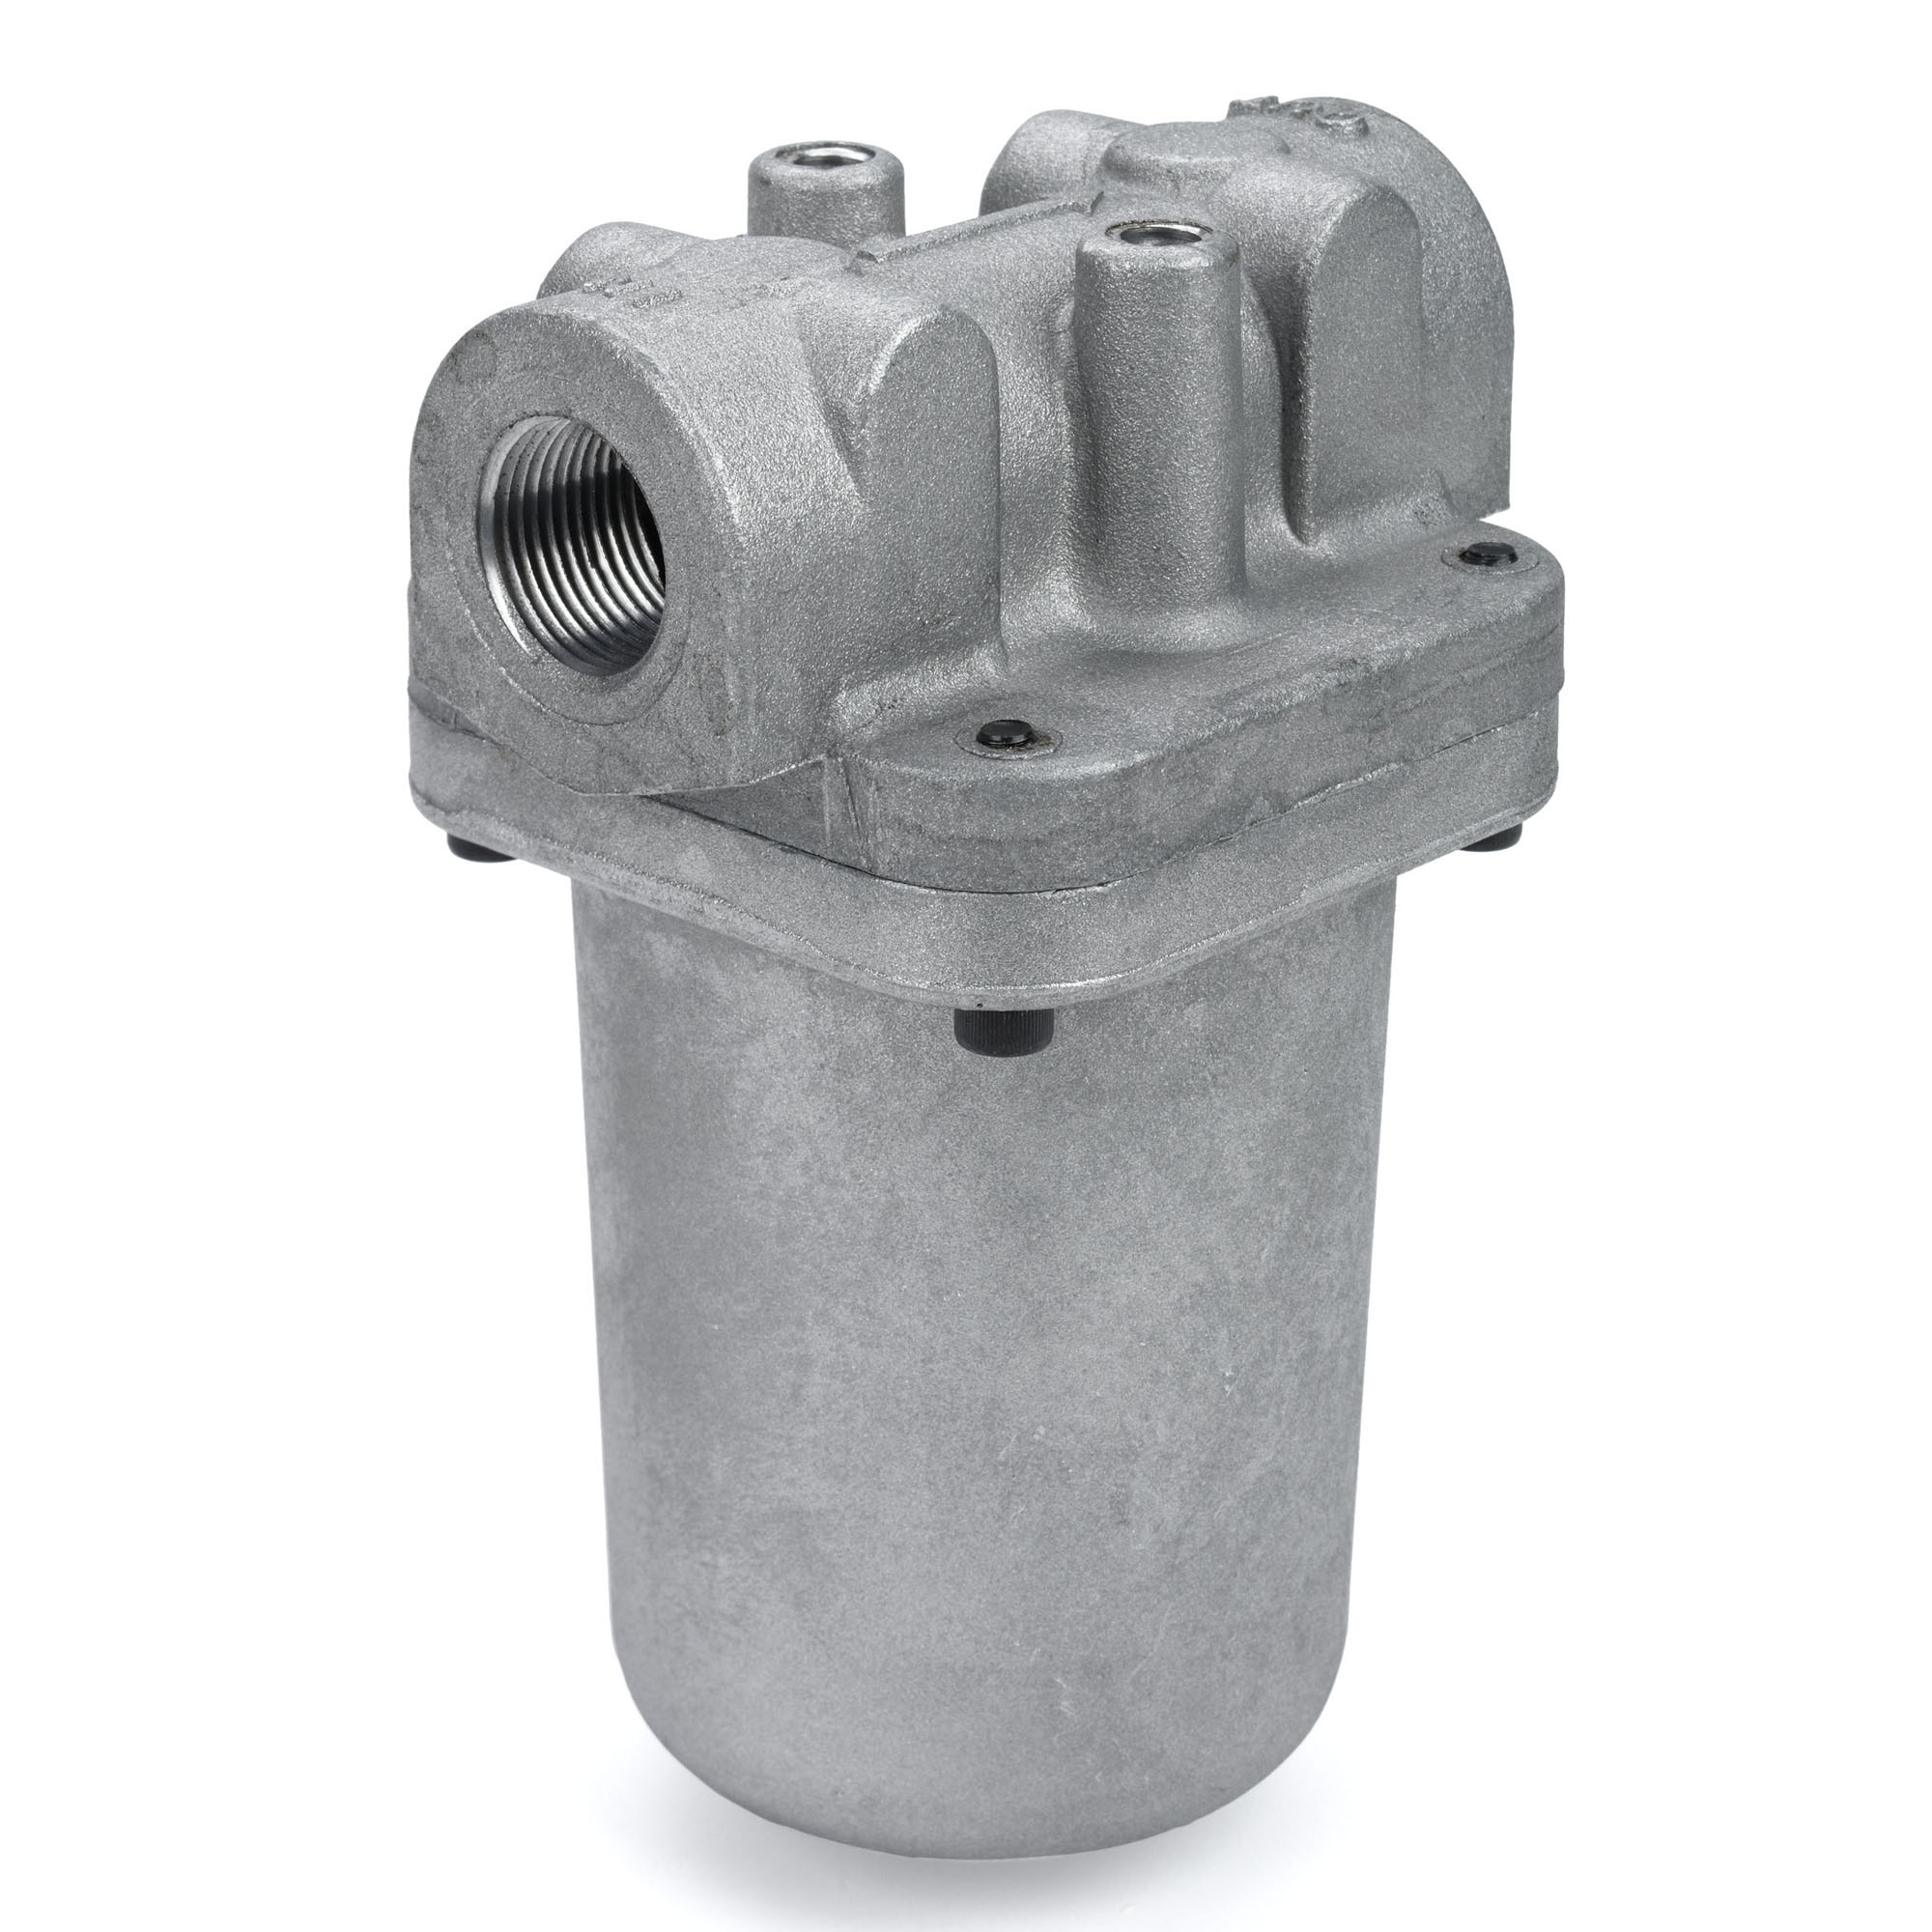 Dh on Inline Hydraulic Filter Housing